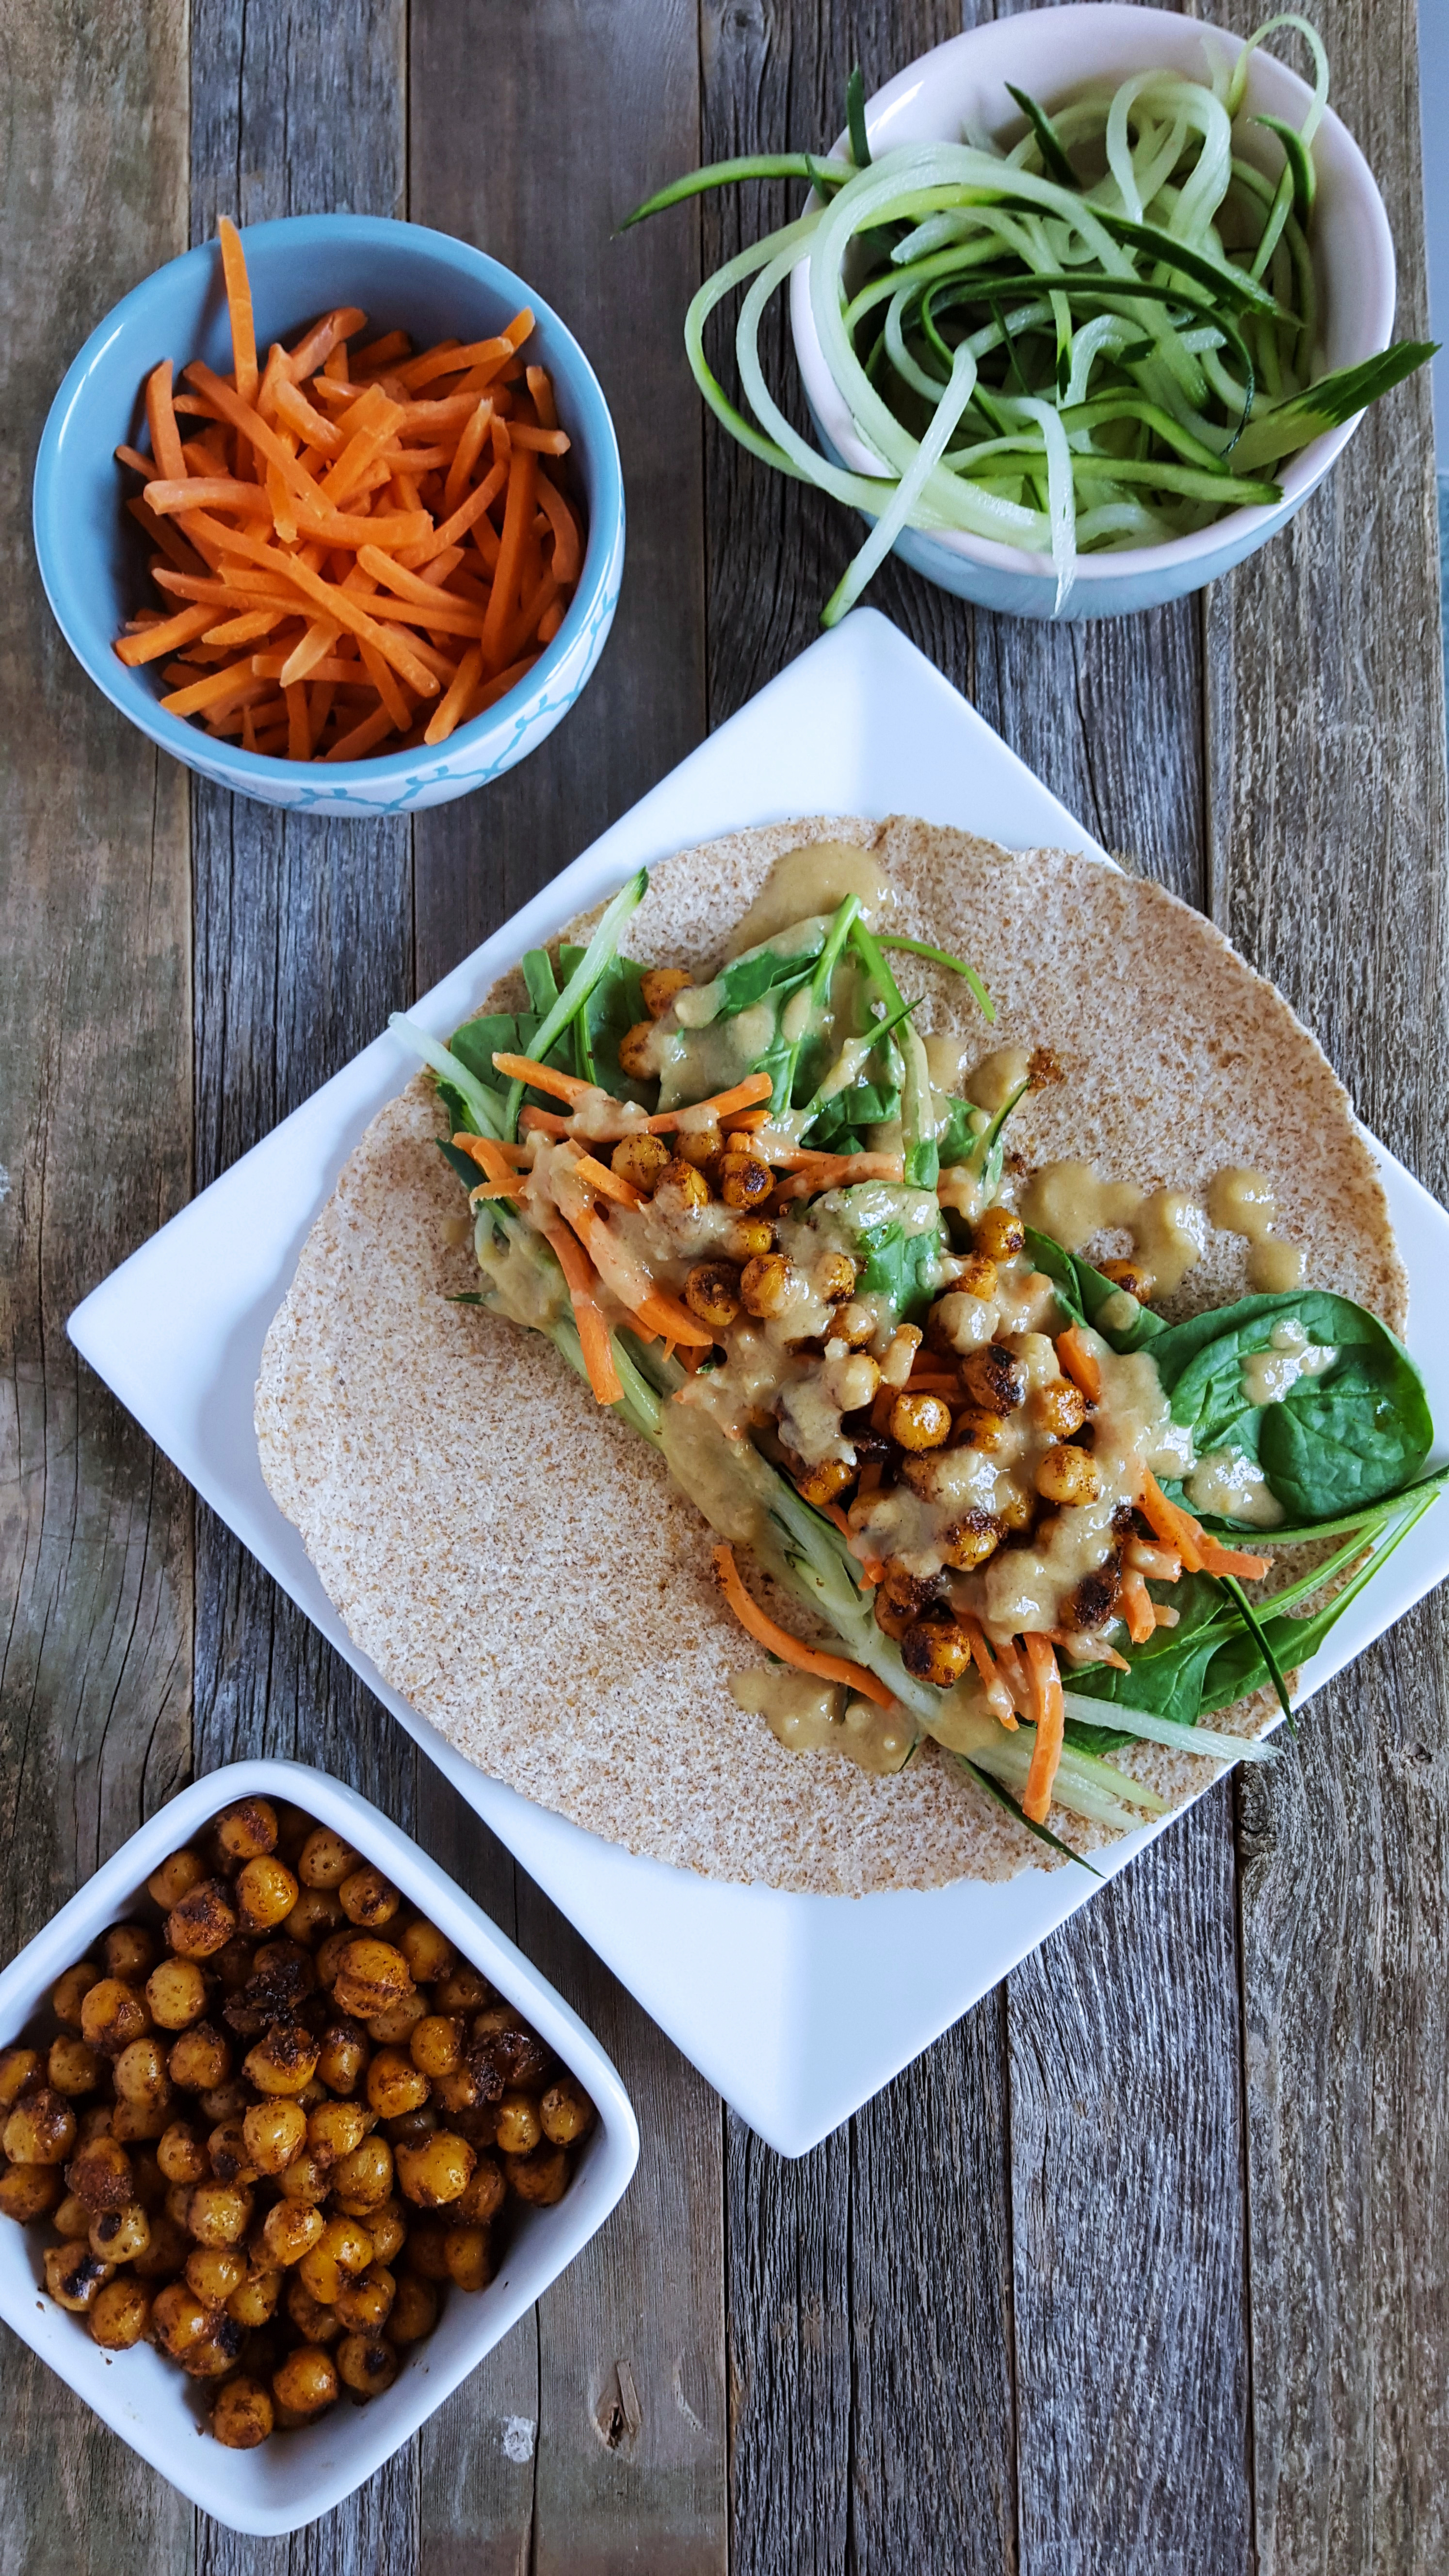 Spicy Roasted Chickpea Wraps With Lemon Tahini Dressing